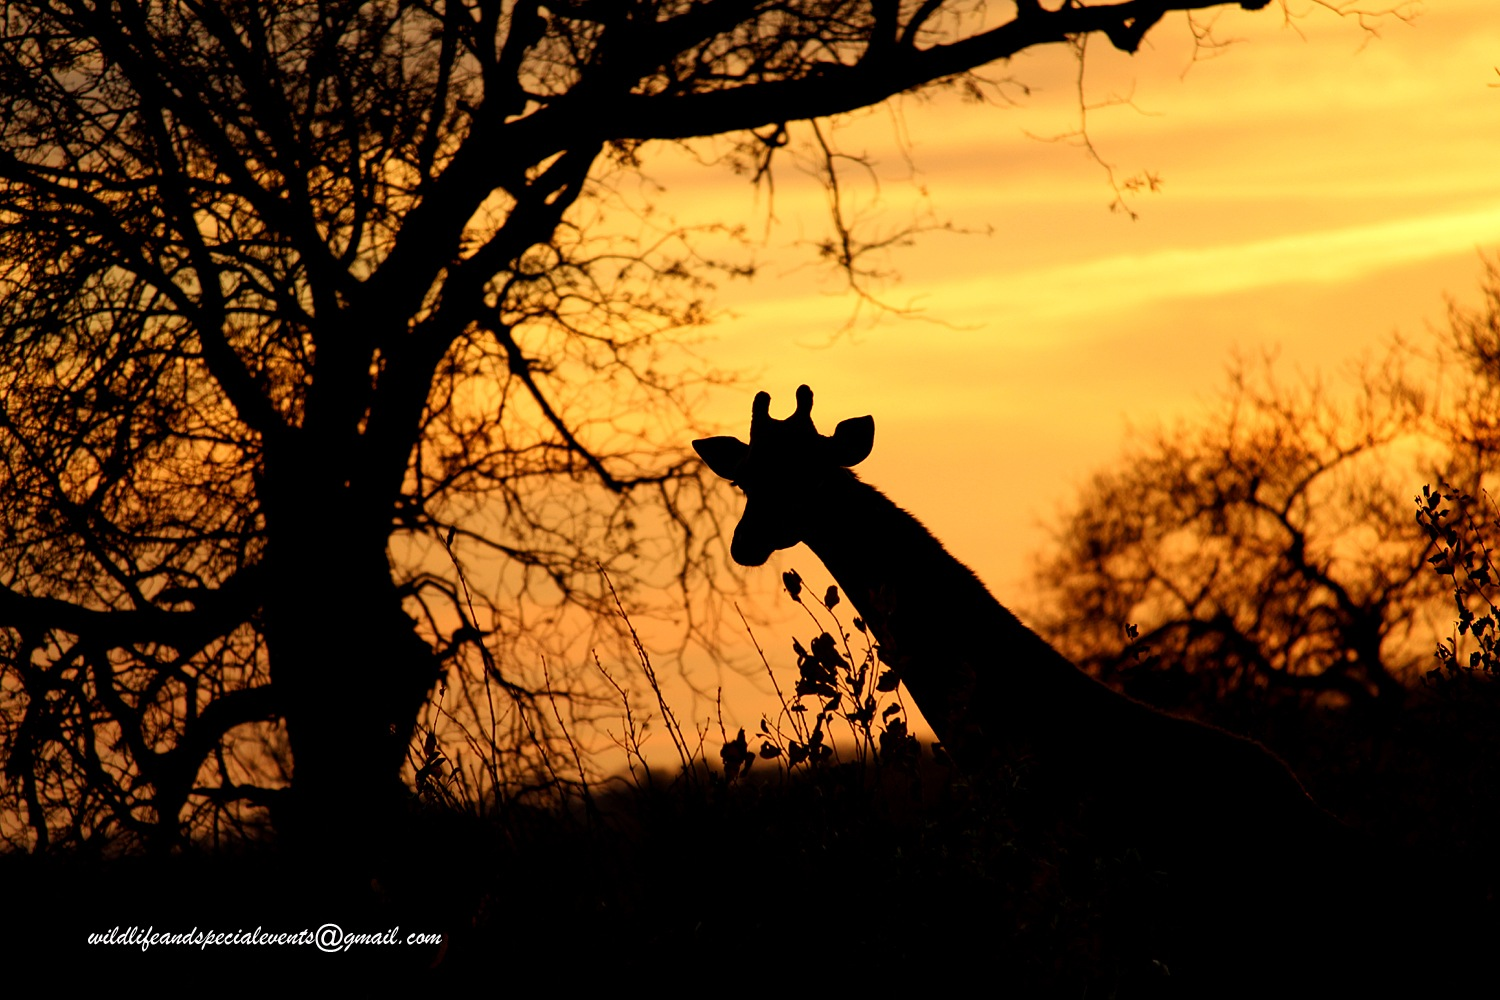 African silhouette by oosie